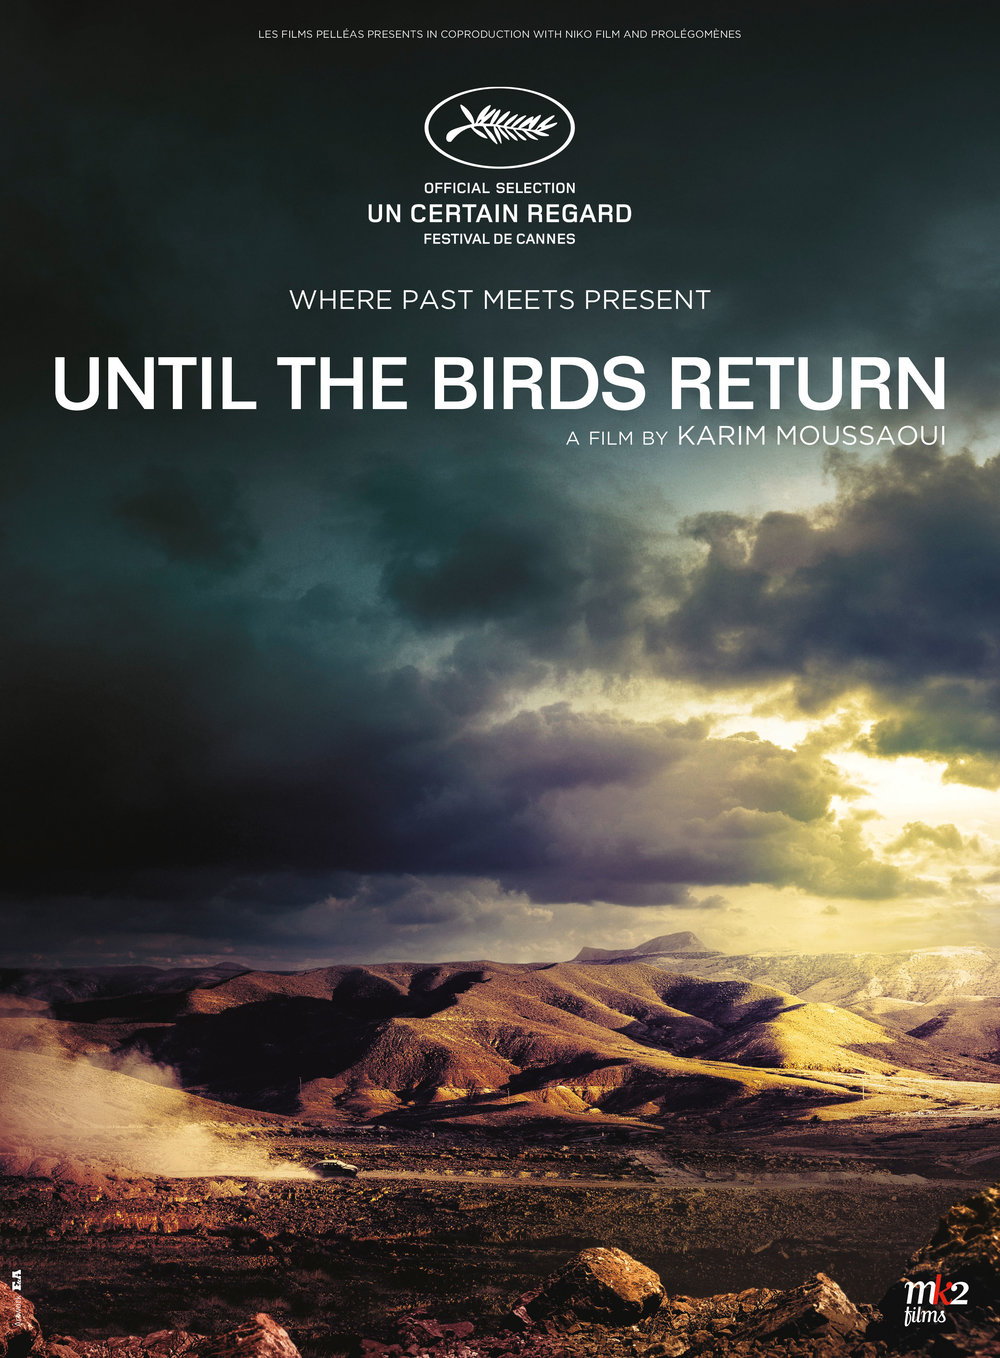 until_the_birds_return_poster.jpg